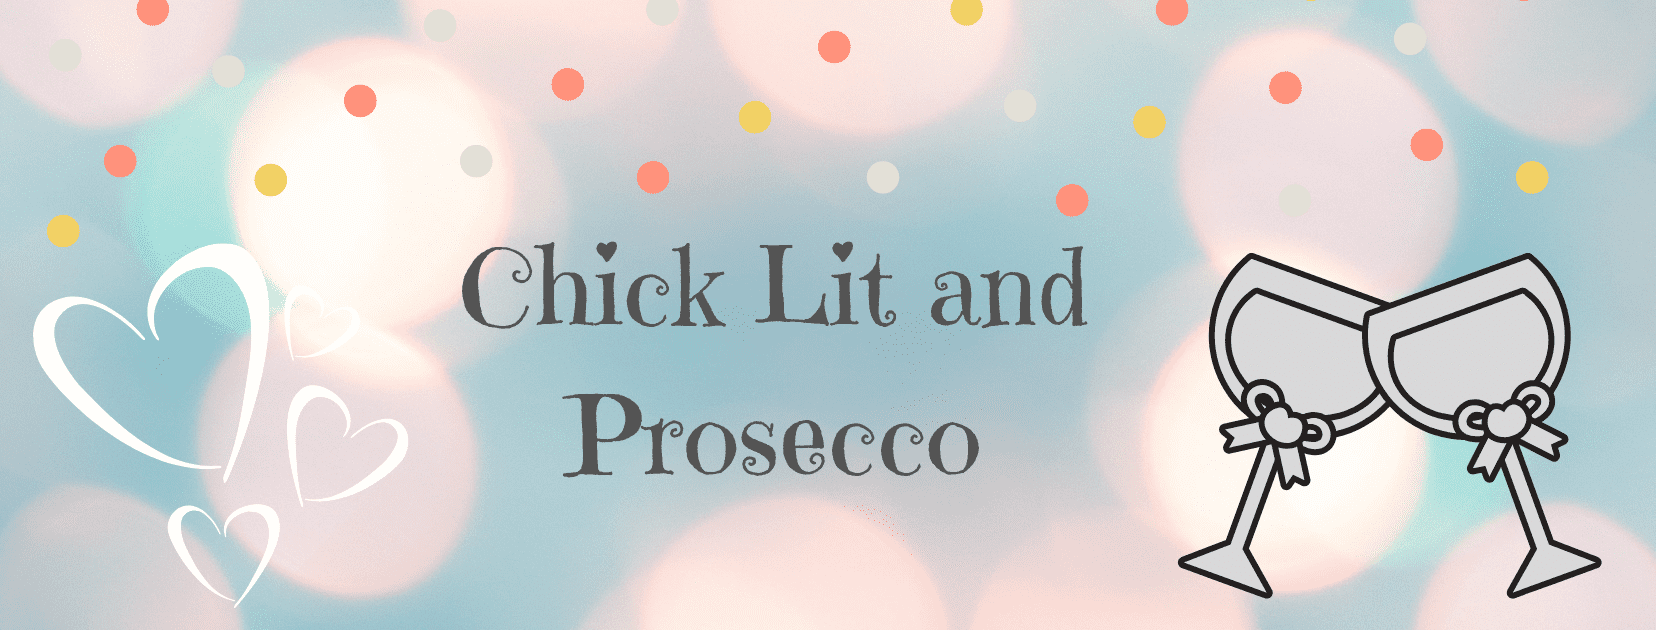 Join our Chick Lit Facebook Group